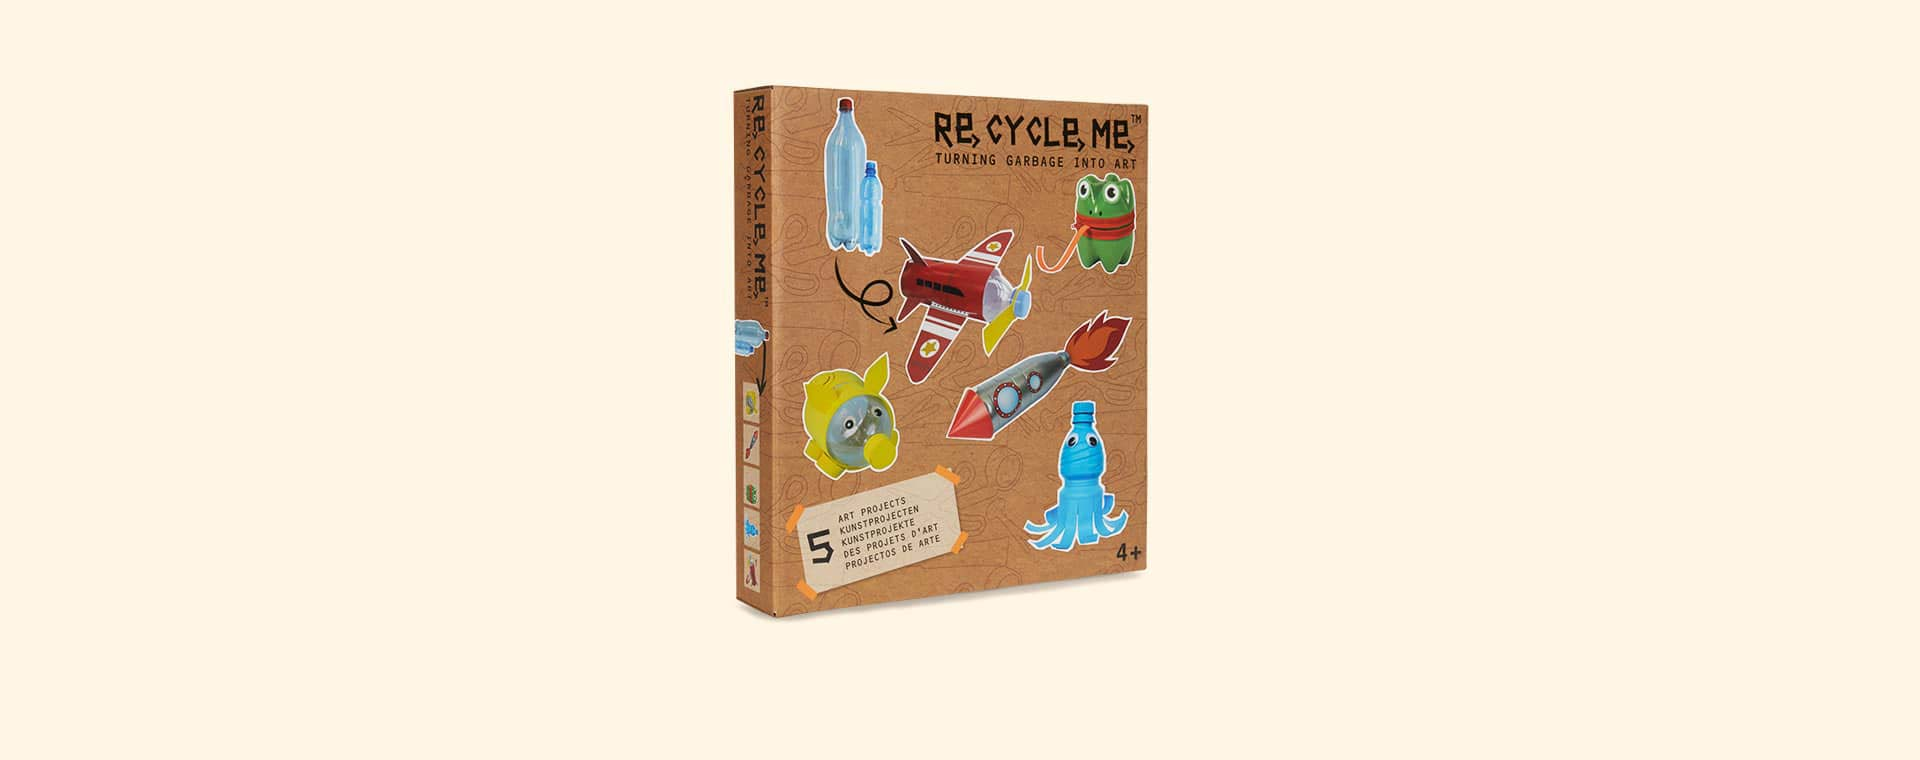 Pet Bottle Action Re-Cycle-Me Recyclable Crafts